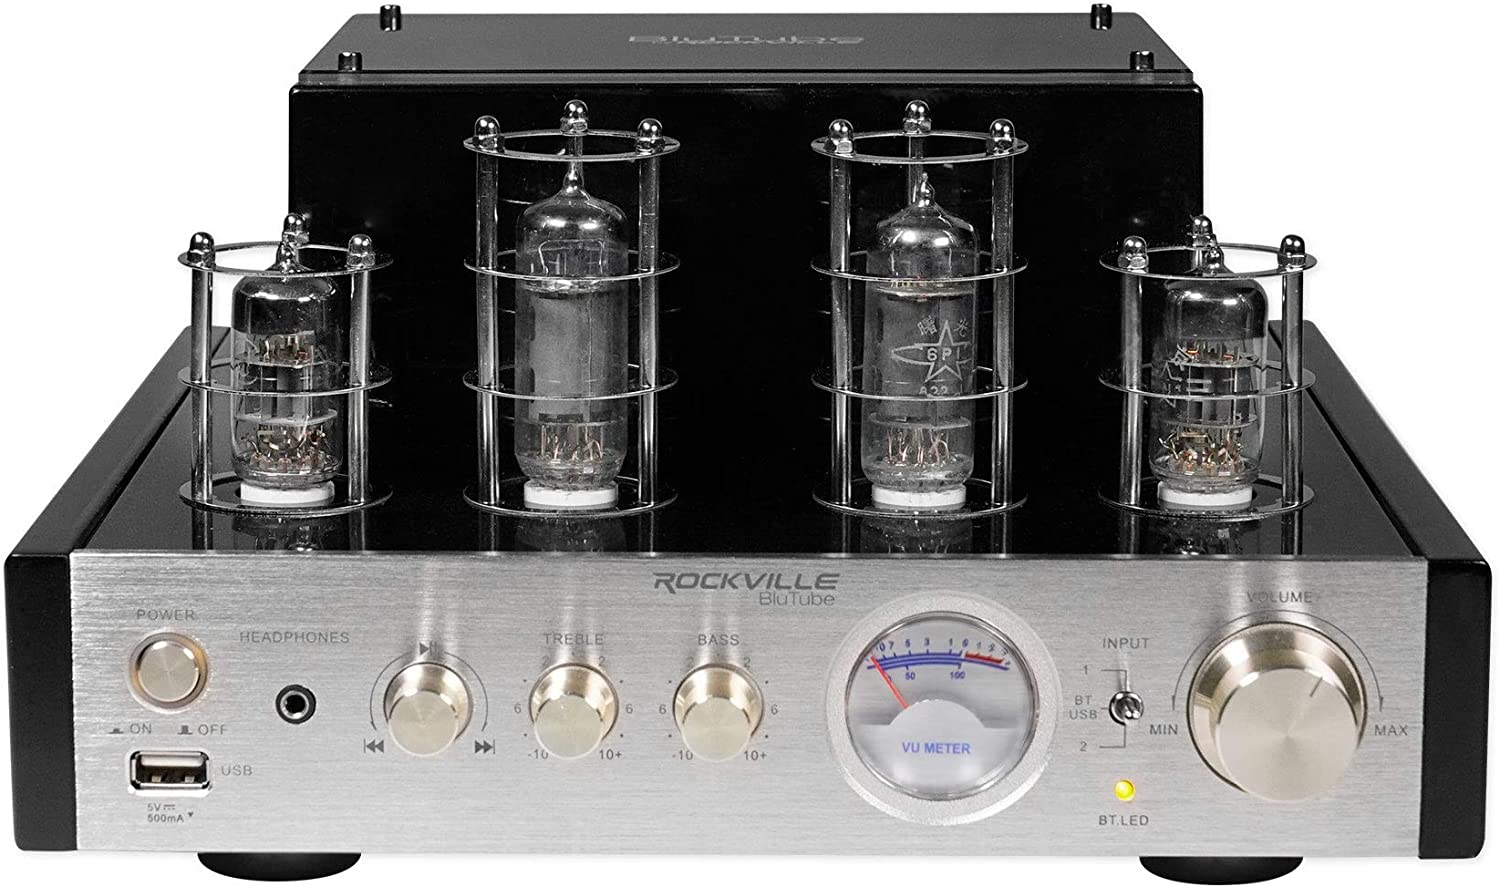 Rockville BluTube SG 70W Tube Amplifier/Home Theater Stereo Receiver W/Bluetooth